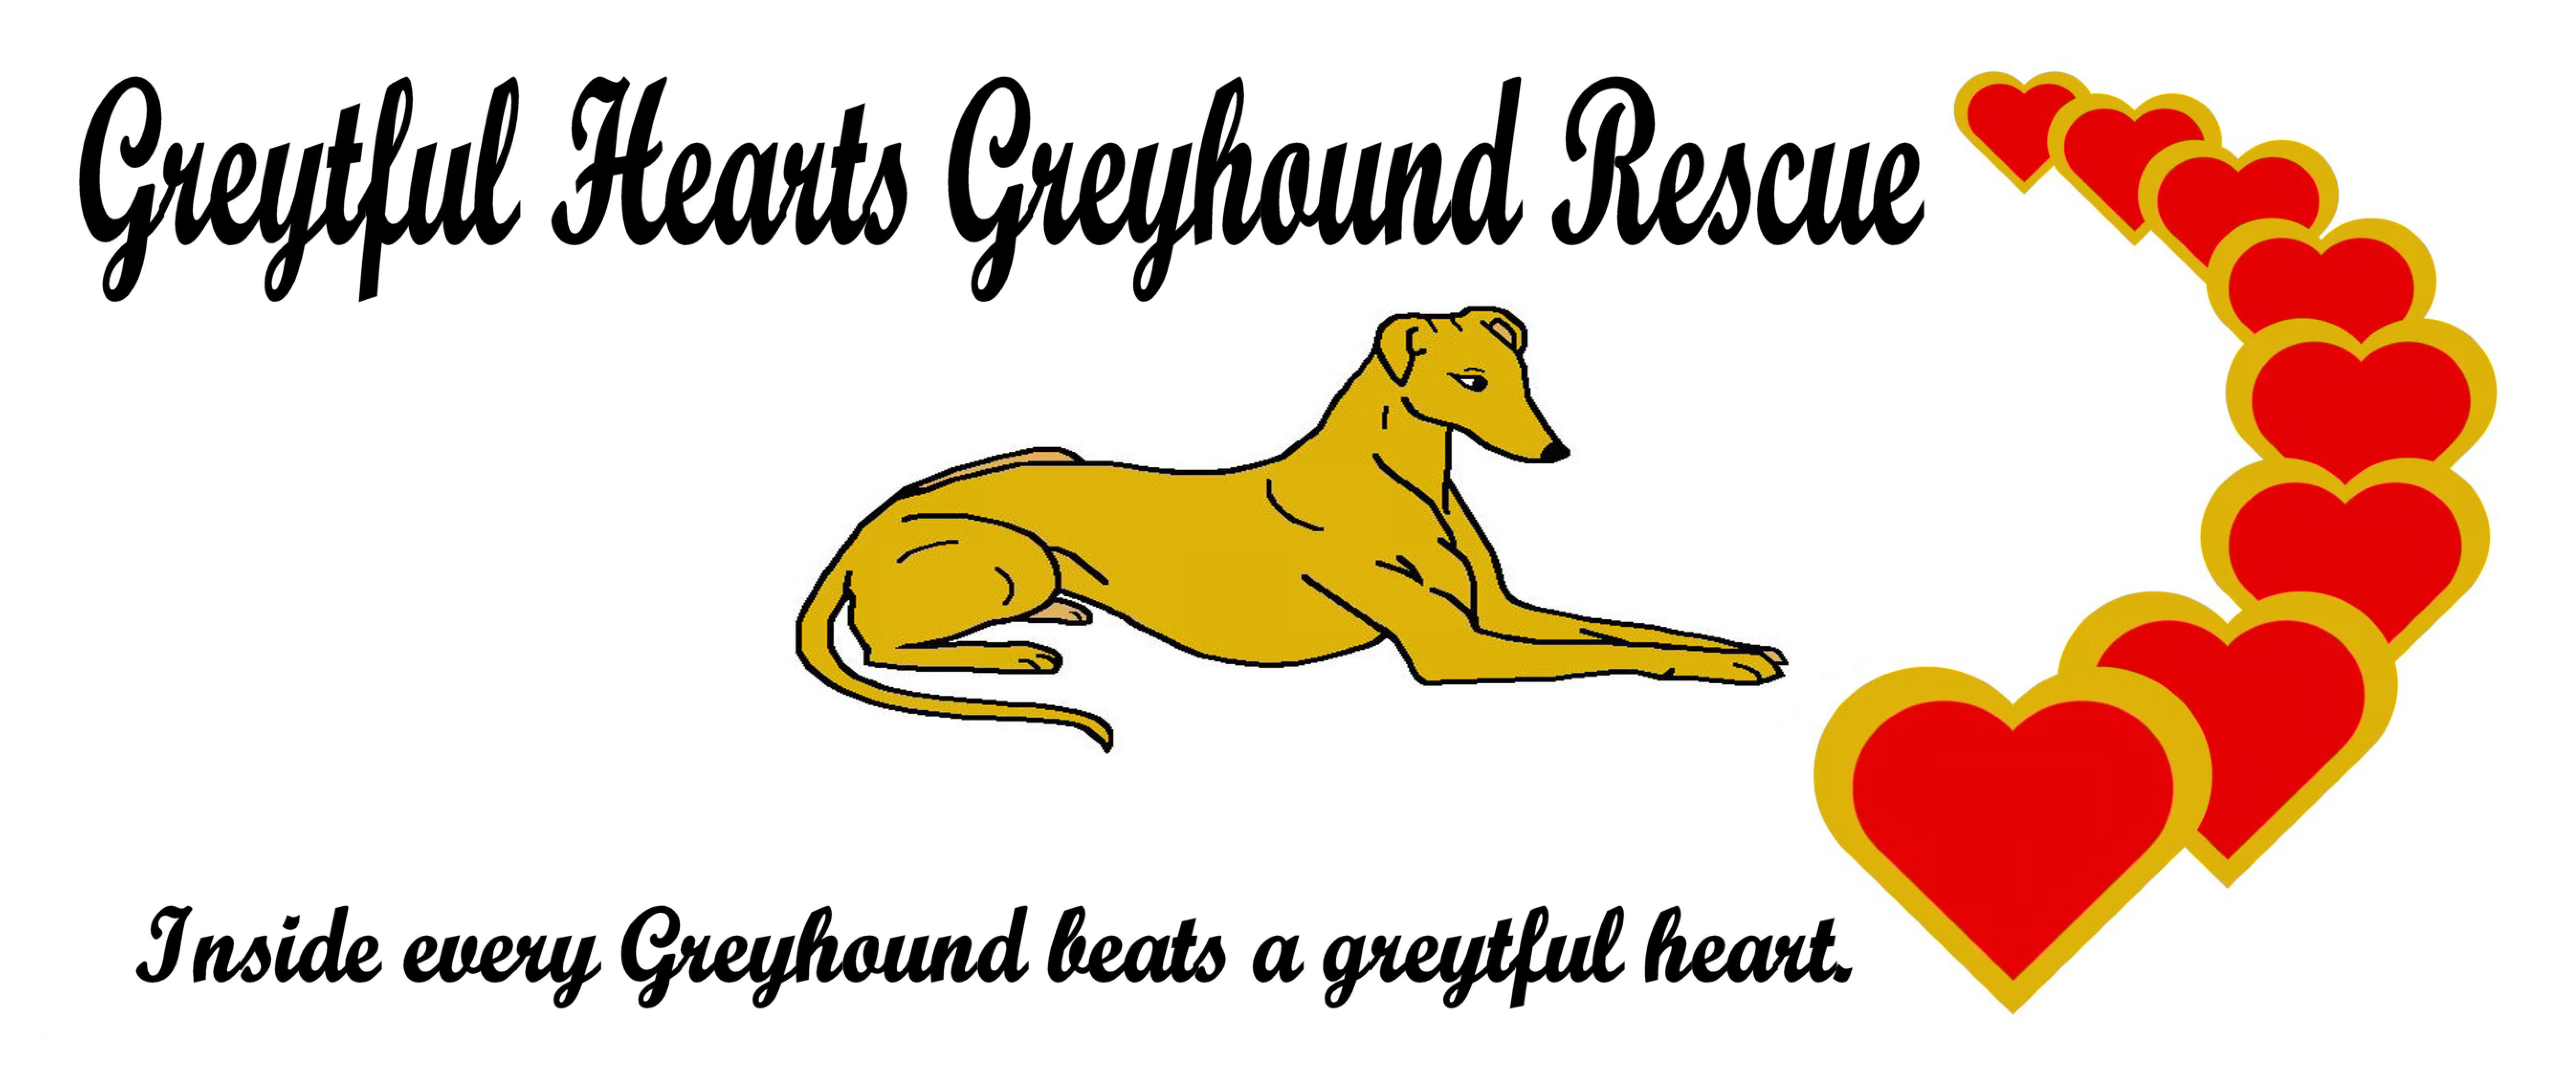 Greytful Hearts Greyhound Rescue